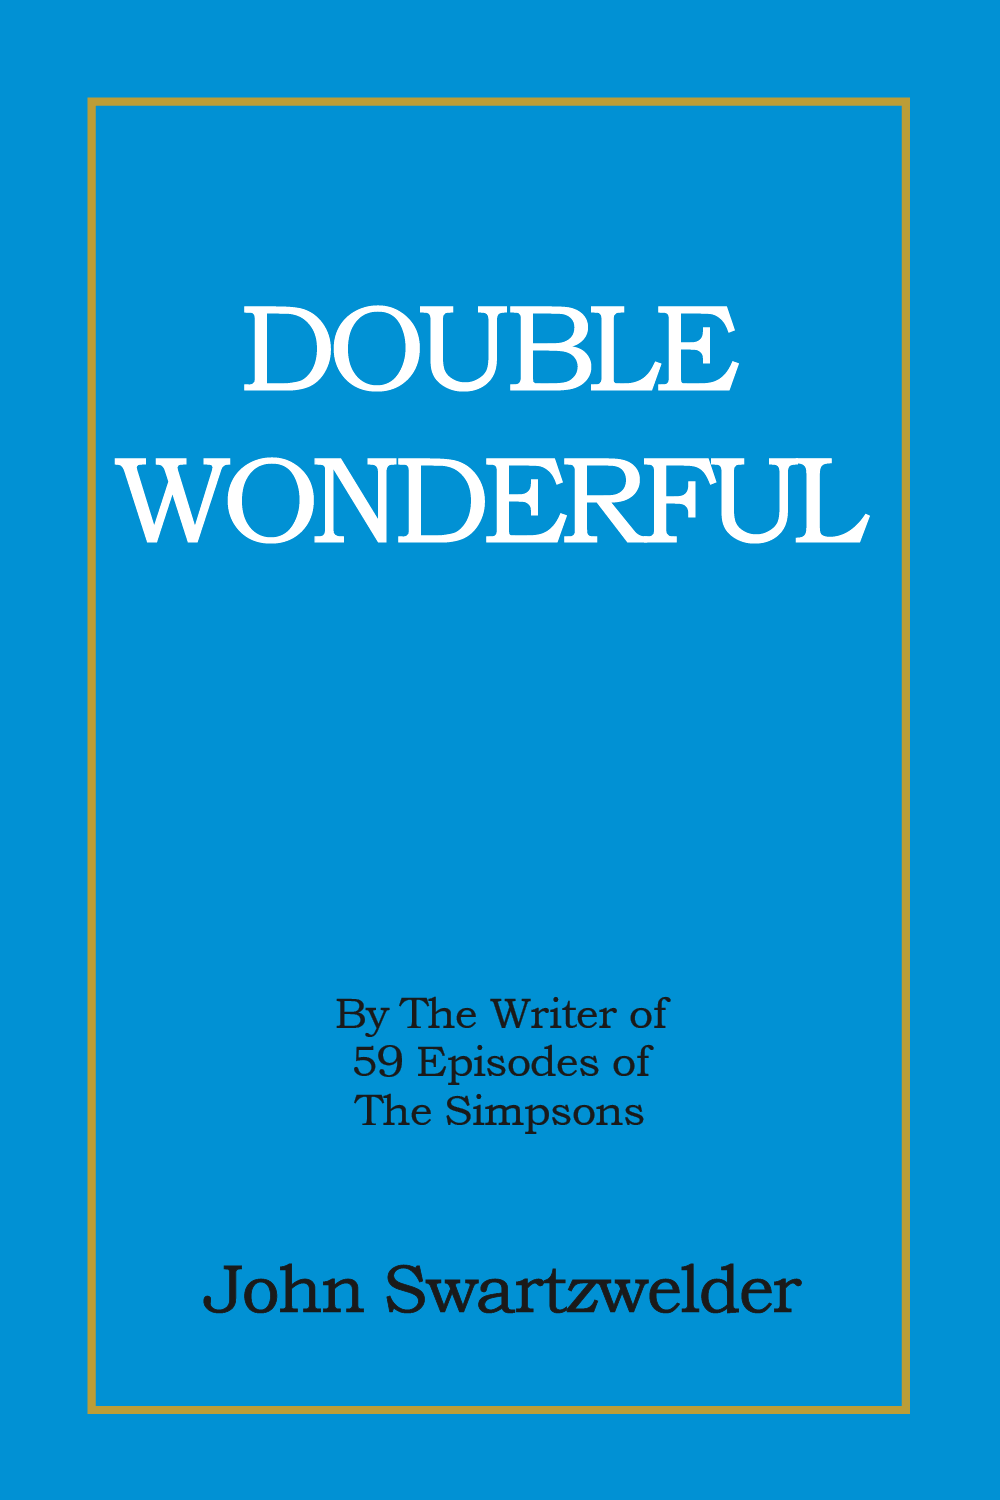 Double Wonderful by John Swartzwelder